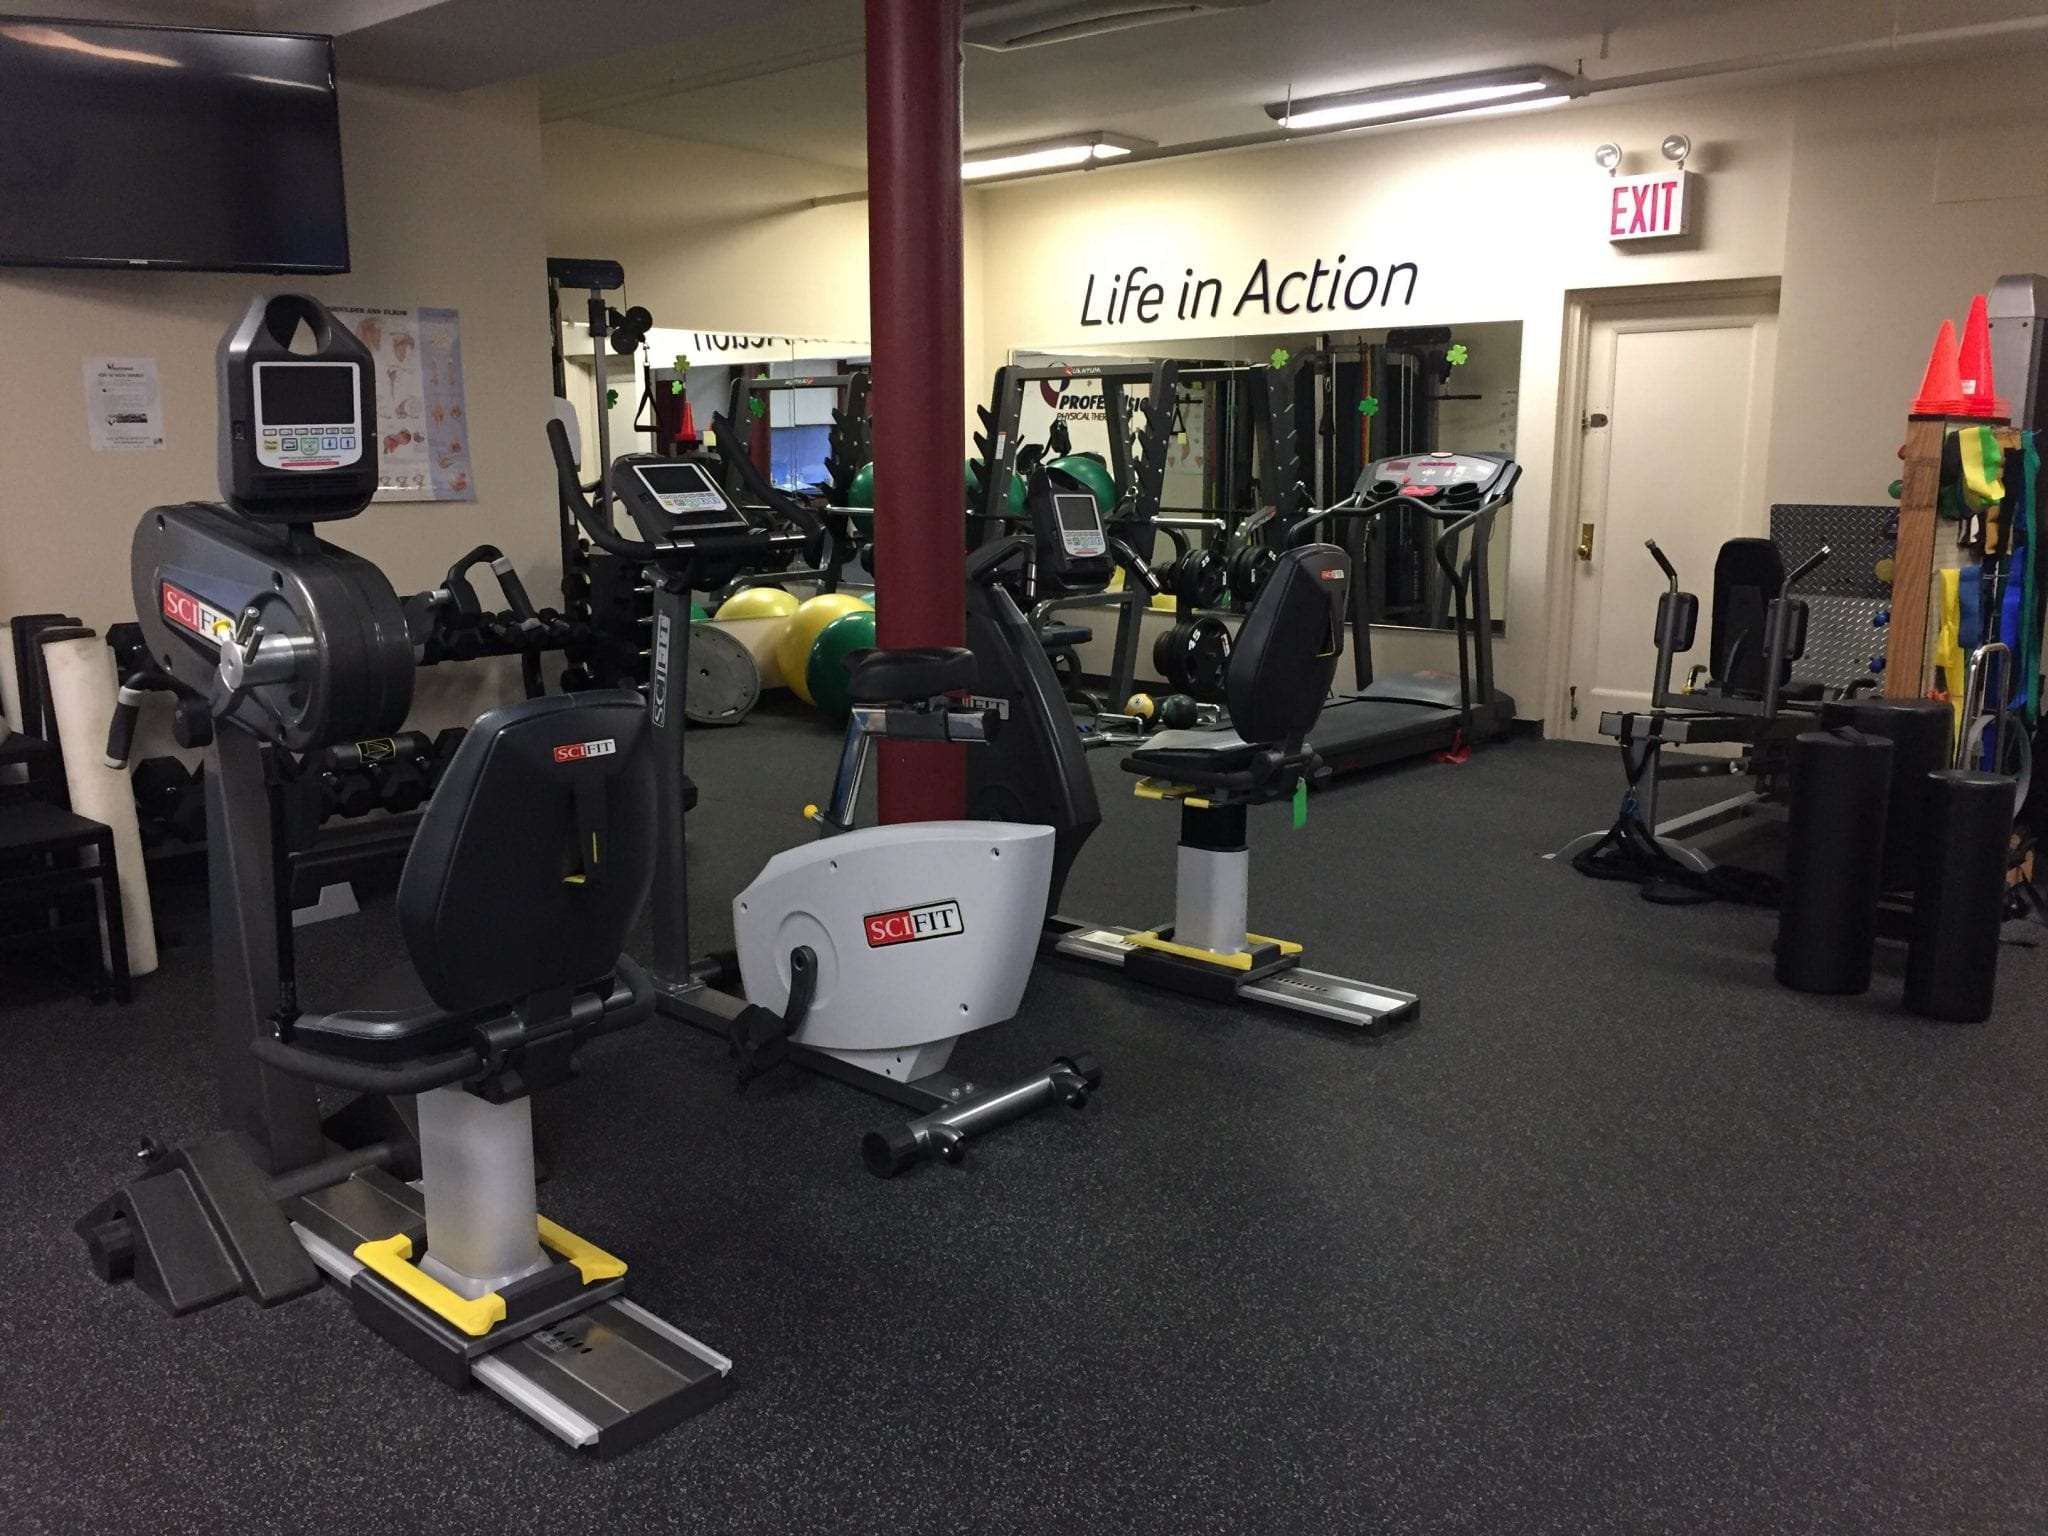 An image of exercise equipment at our physical therapy clinic in Manhattan, New York City at Upper East Side on 87th st.